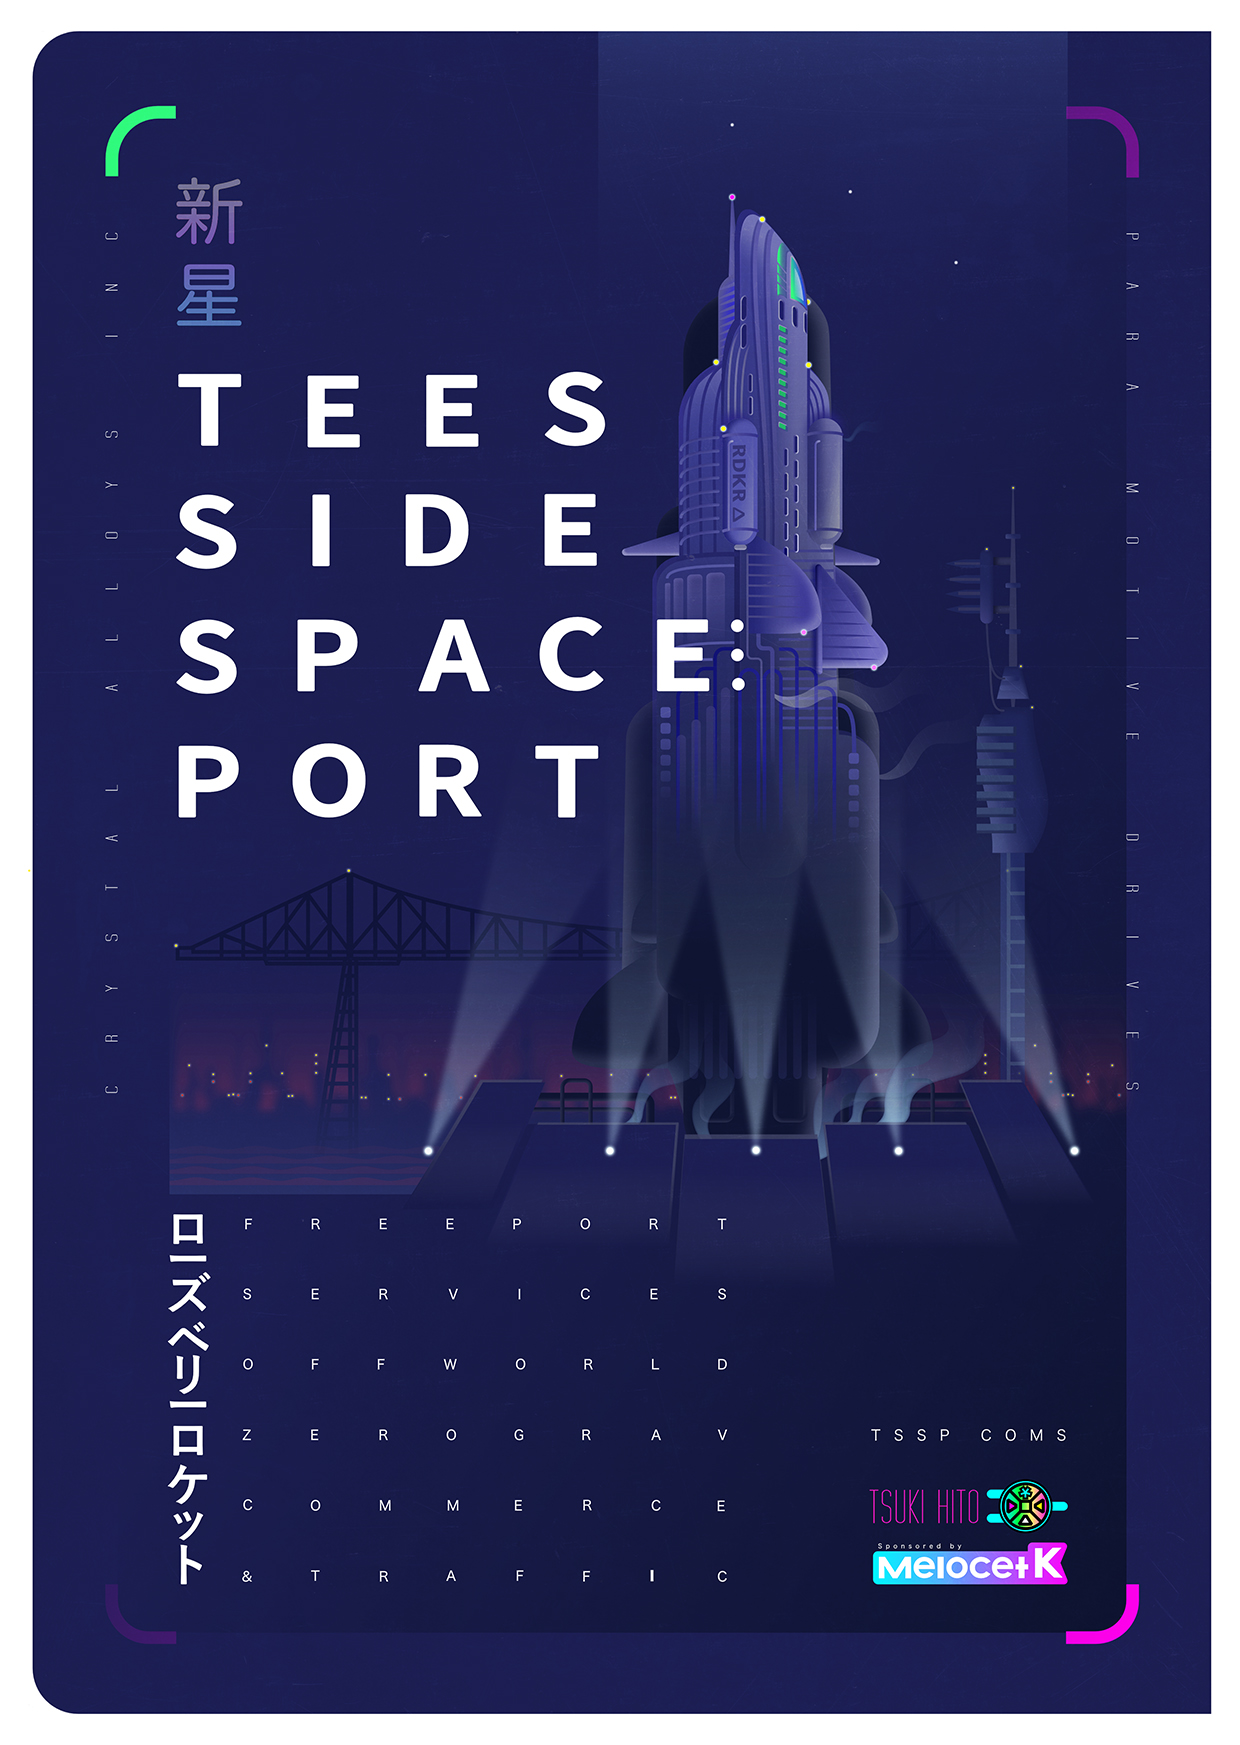 Teesside Space Port